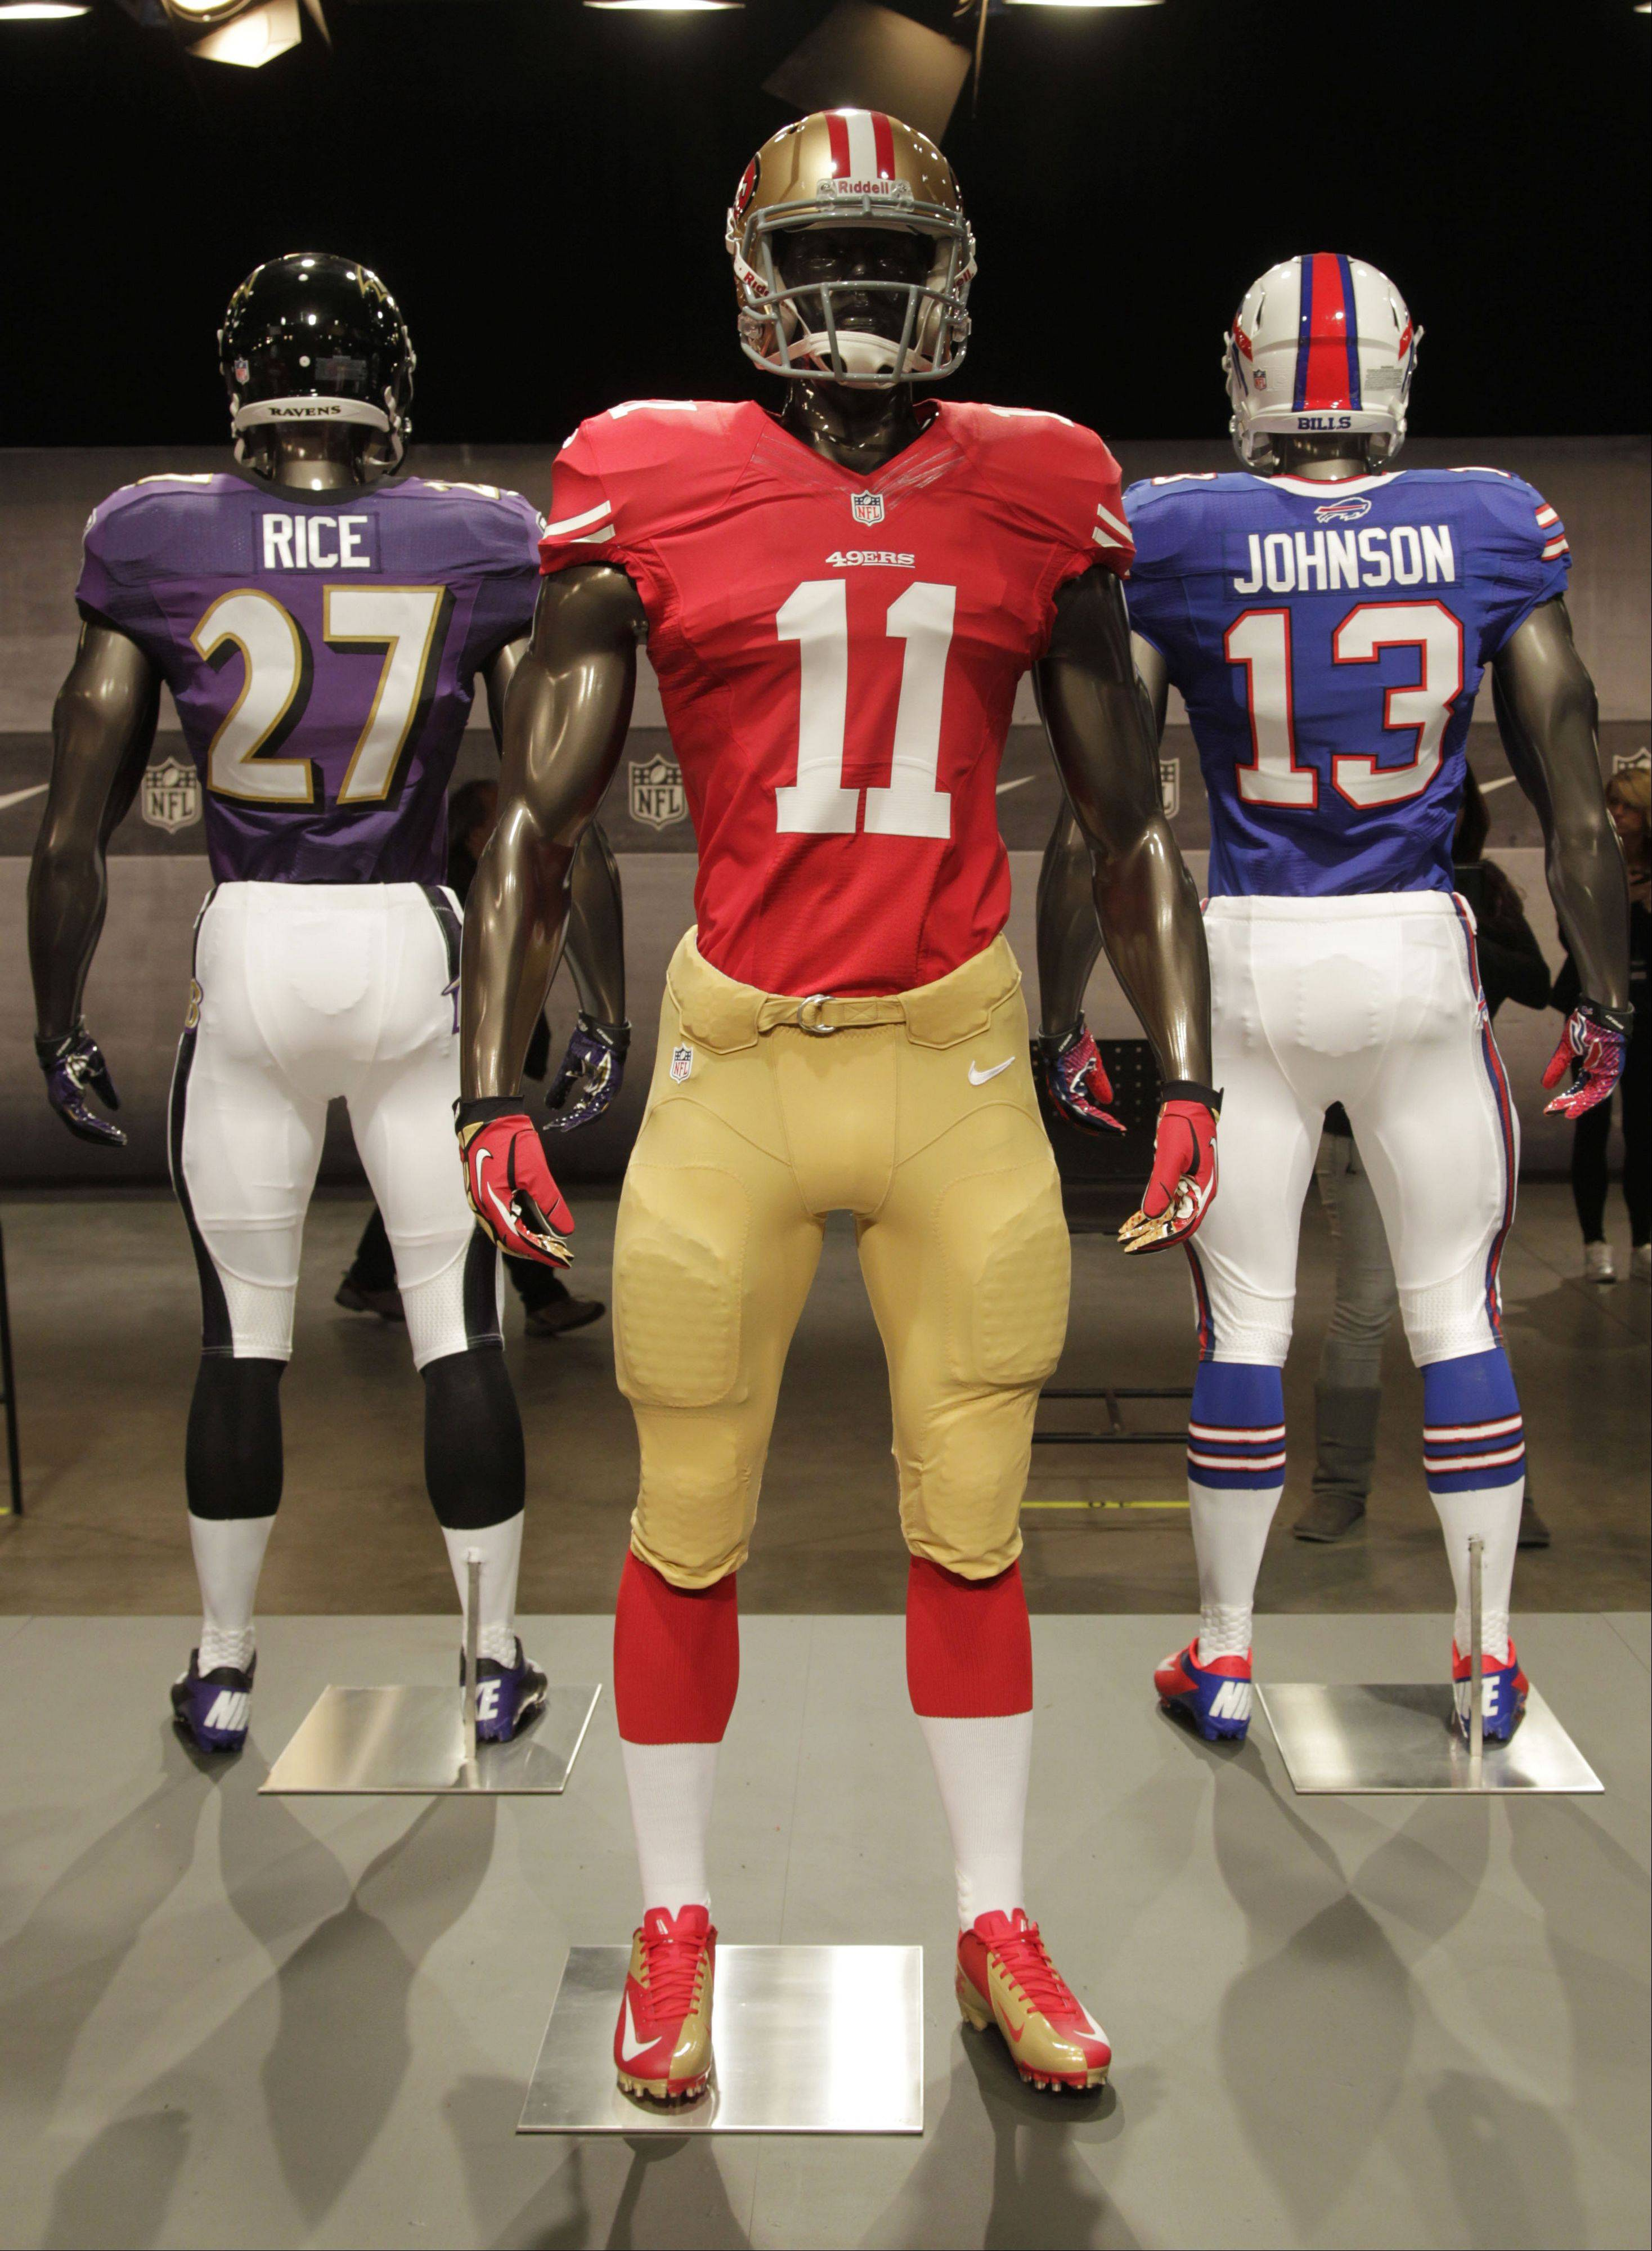 The new San Francisco 49ers uniform is displayed on a mannequin in New York, Tuesday, April 3, 2012. NFL has unveiled its new sleek uniforms designed by Nike. While most of the new uniforms are not very different visually, they all are made with new technology that make them lighter, dryer and more comfortable.